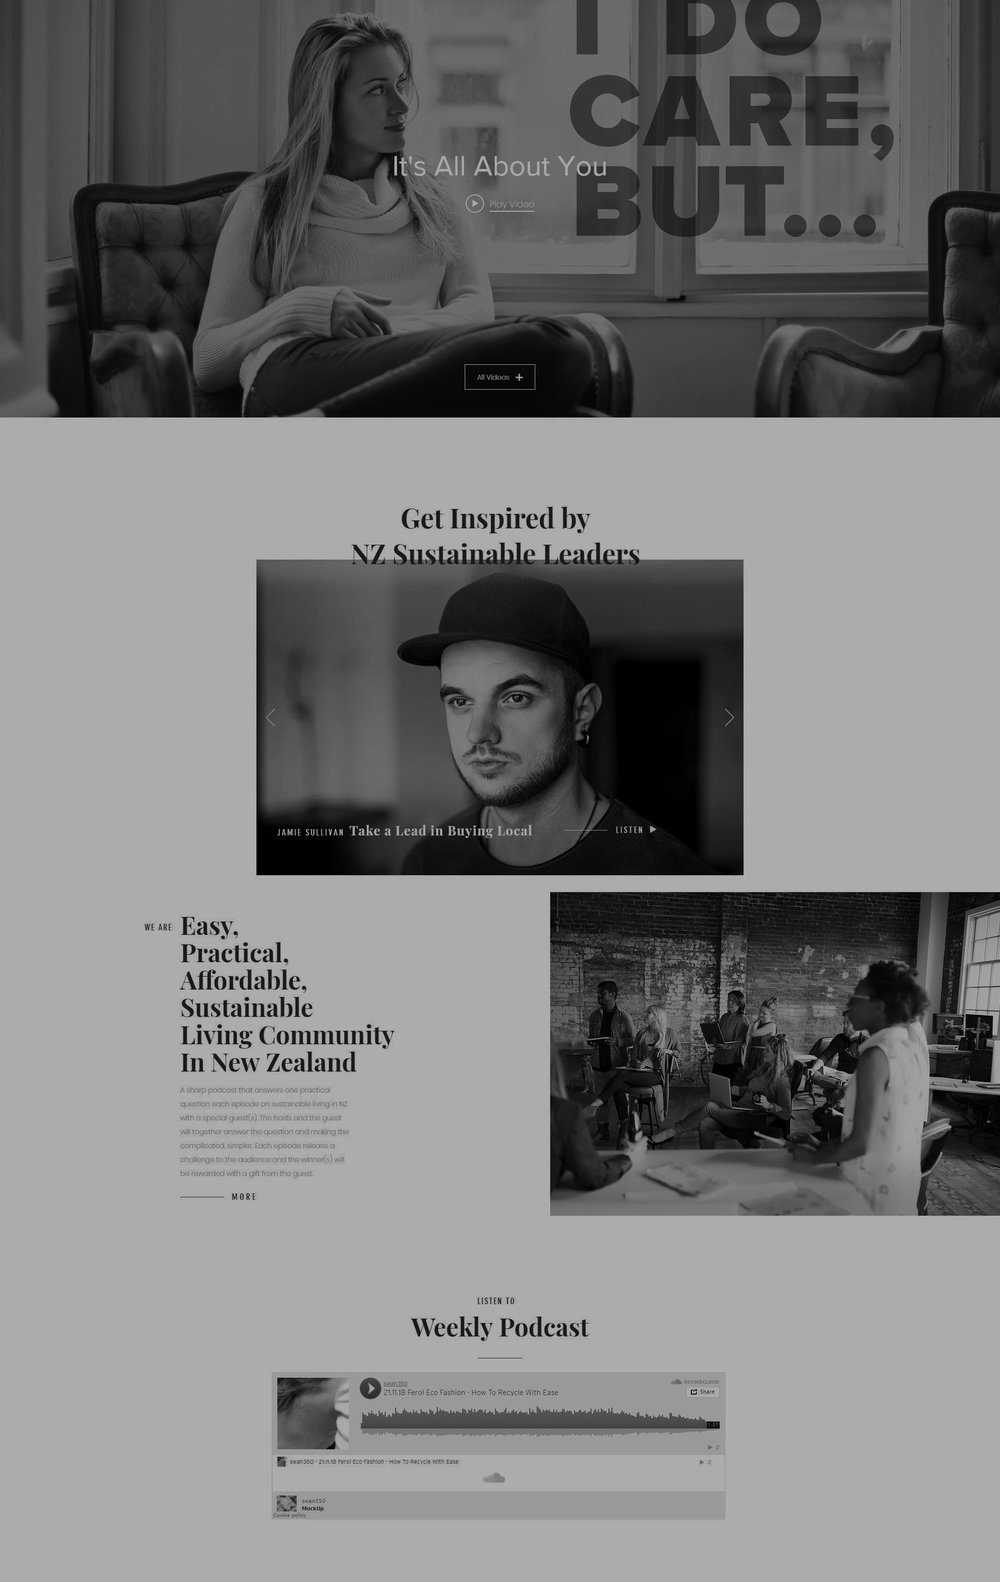 Prototype Website - User stories, videos by guests, online podcast, live stream, Instagram feed, all in one.